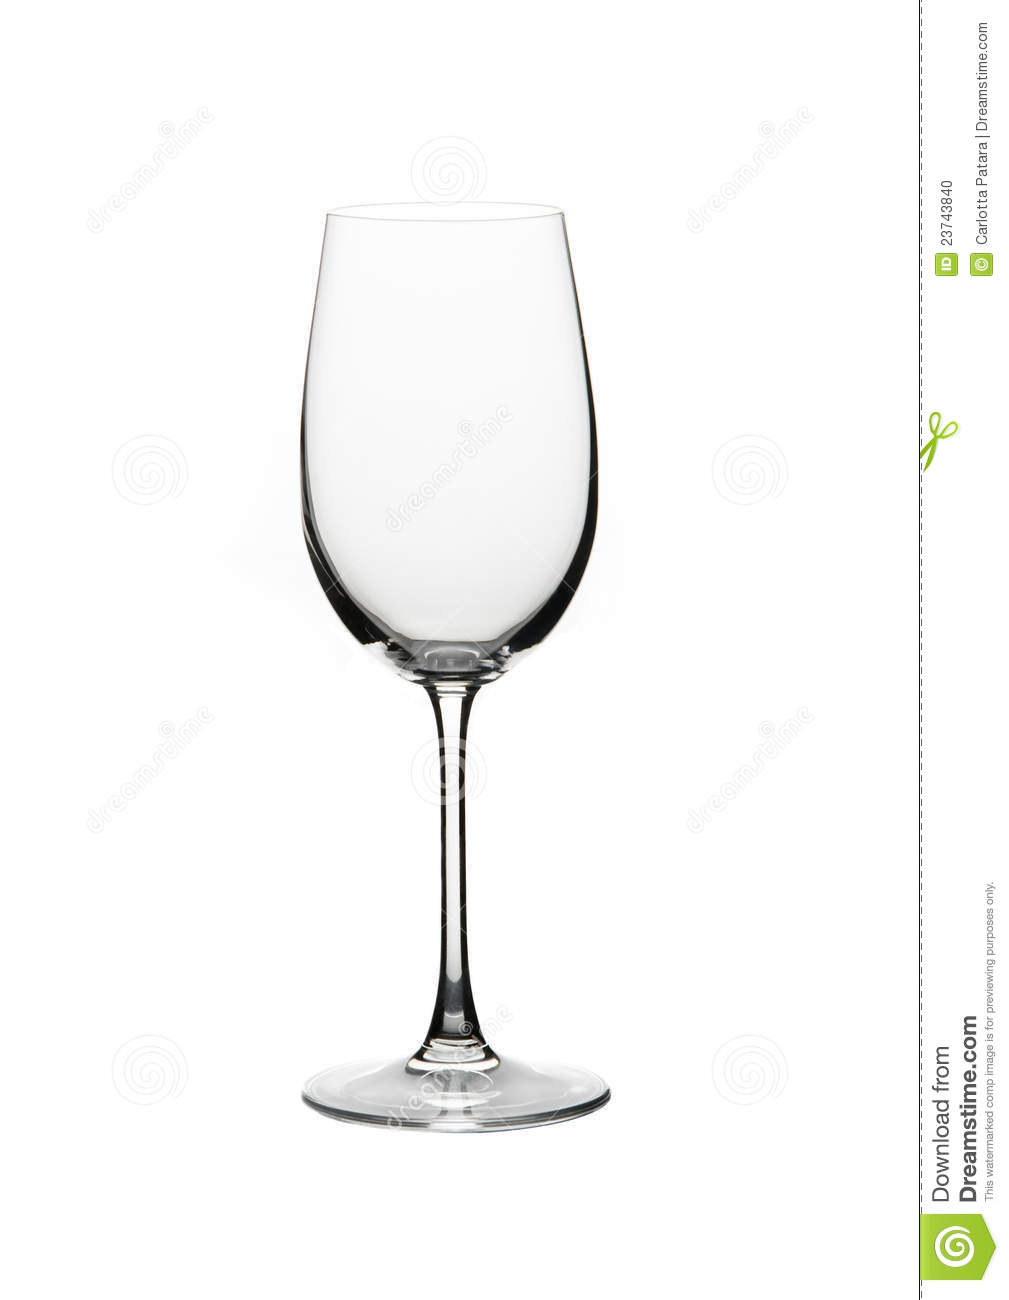 Wine Glass On A White Background Stock Photo - Image: 23743840